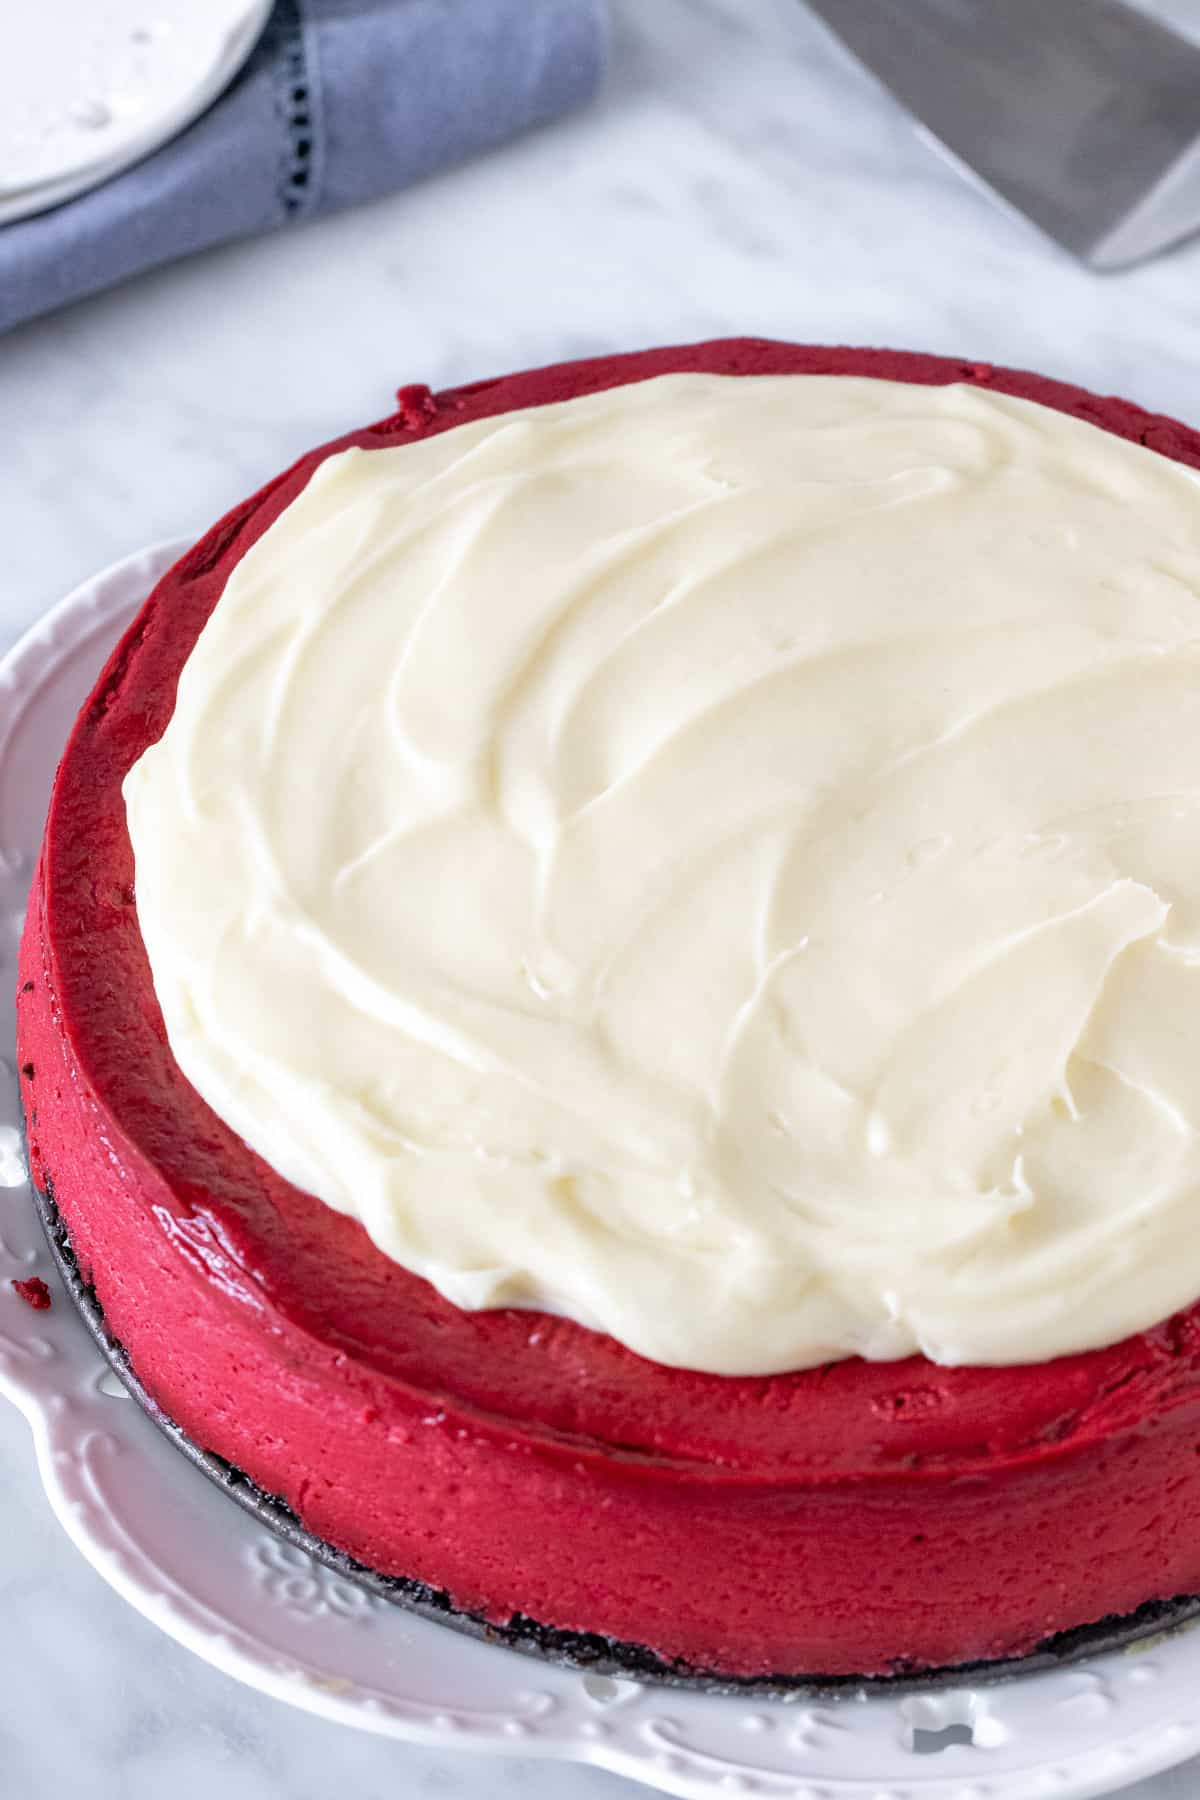 Red Velvet cheesecake with cream cheese topping on a plate.